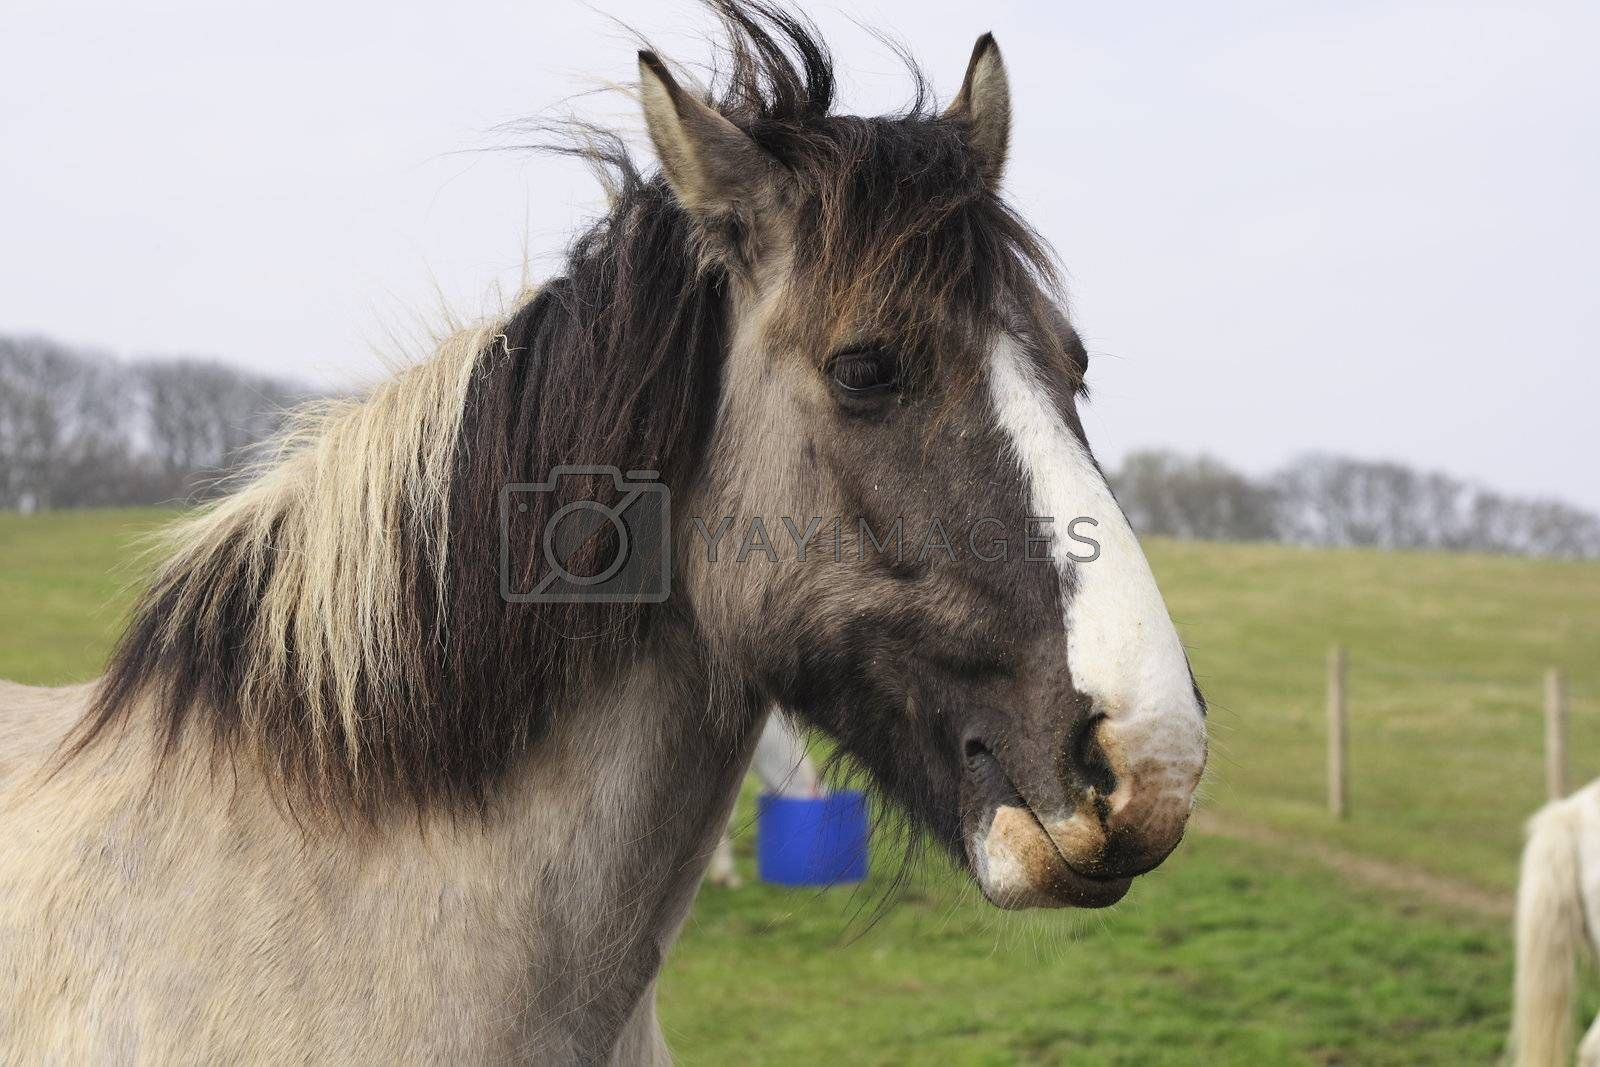 closeup of the head of a horse in a field